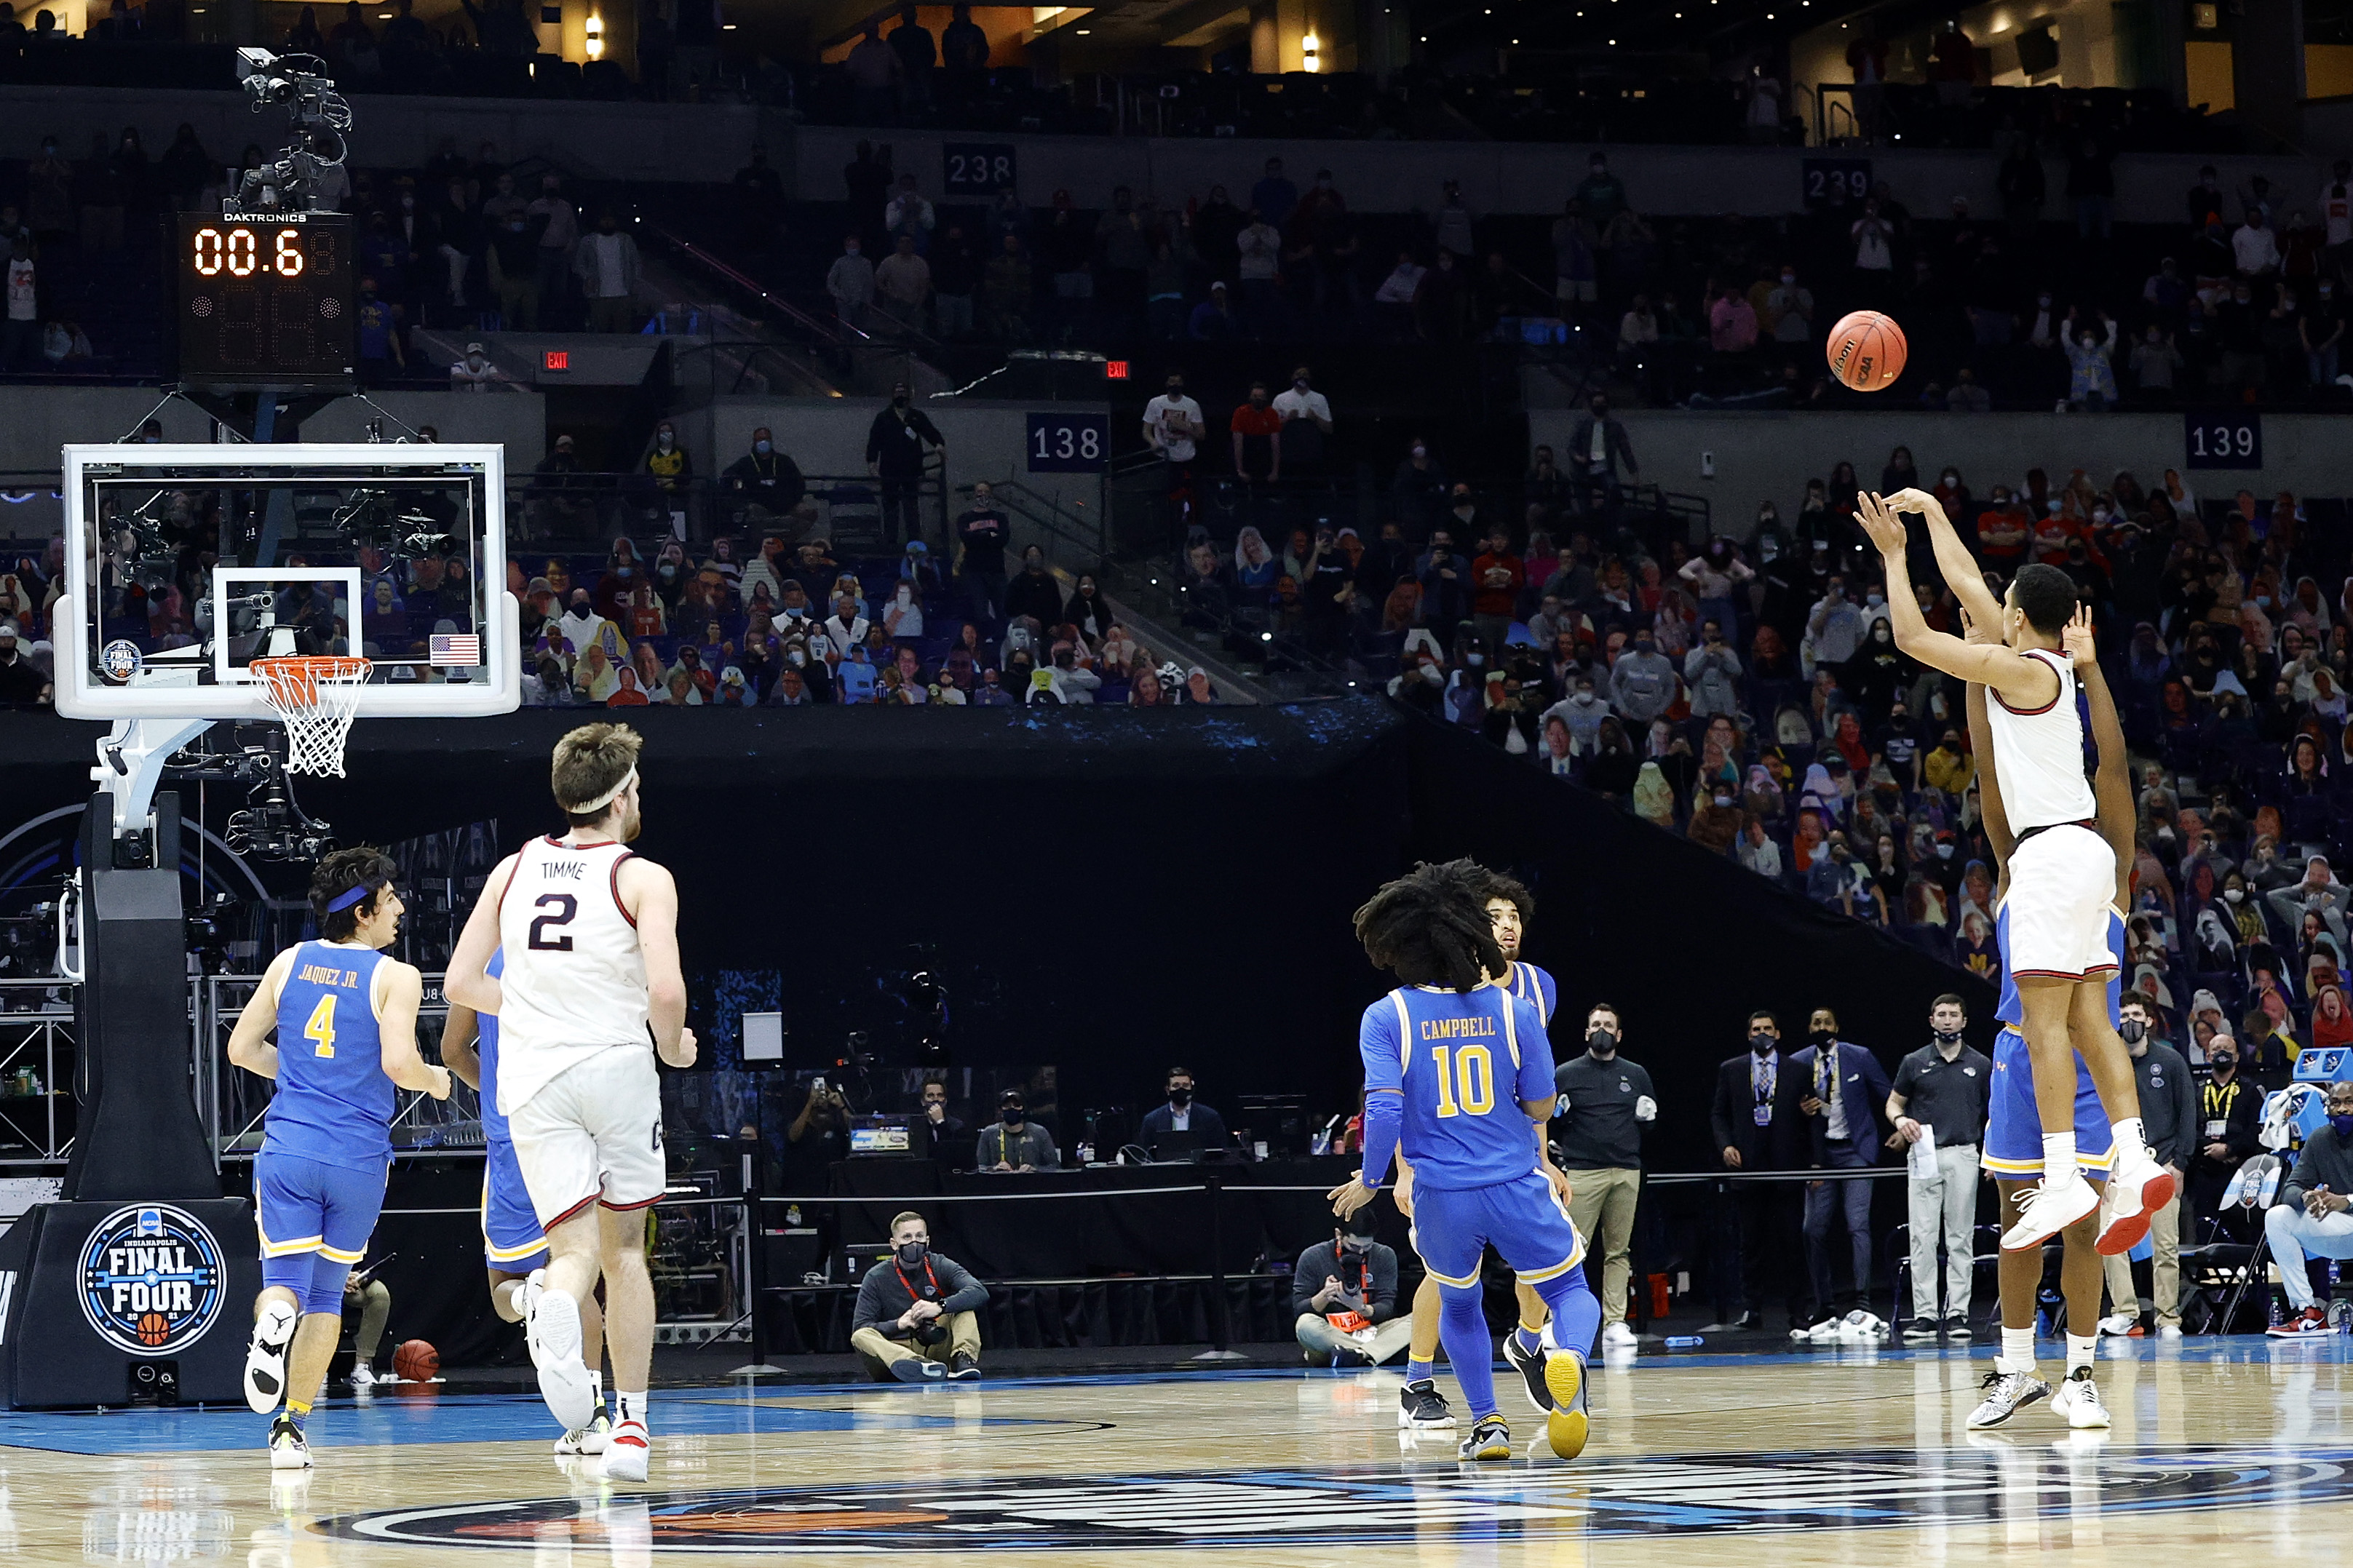 Jalen Suggs of the Gonzaga Bulldogs shoots a game-winning three point basket in overtime to defeat the UCLA Bruins 93-90 during the 2021 NCAA Final Four semifinal at Lucas Oil Stadium on April 03, 2021 in Indianapolis, Indiana.